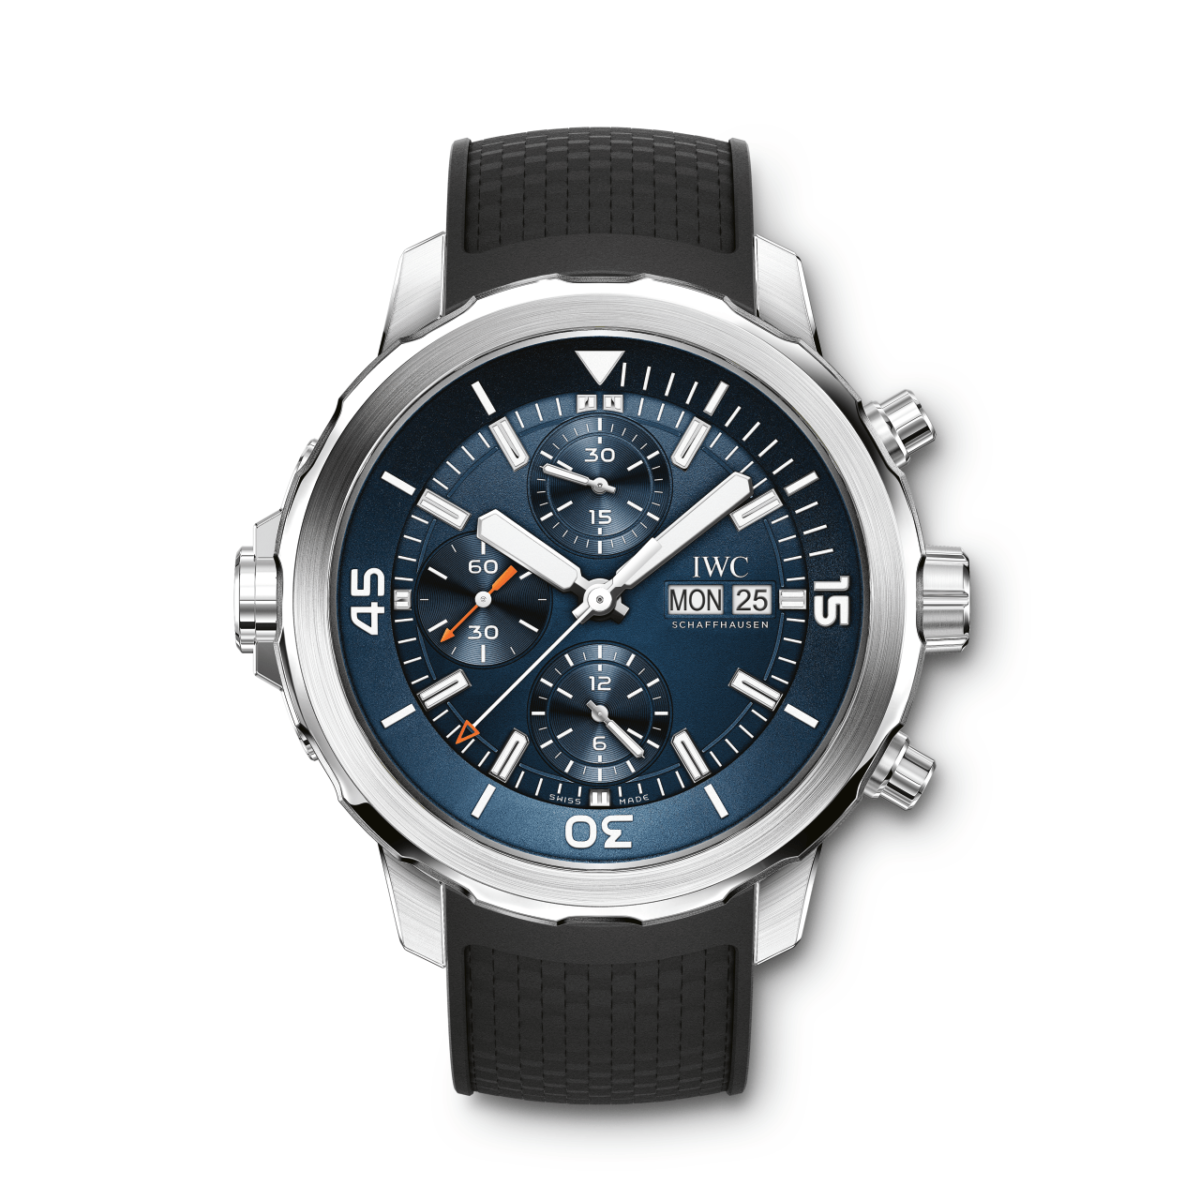 IW376805 Aquatimer Chronograph Edition Expedition Jaques-Yves Cousteau_627146